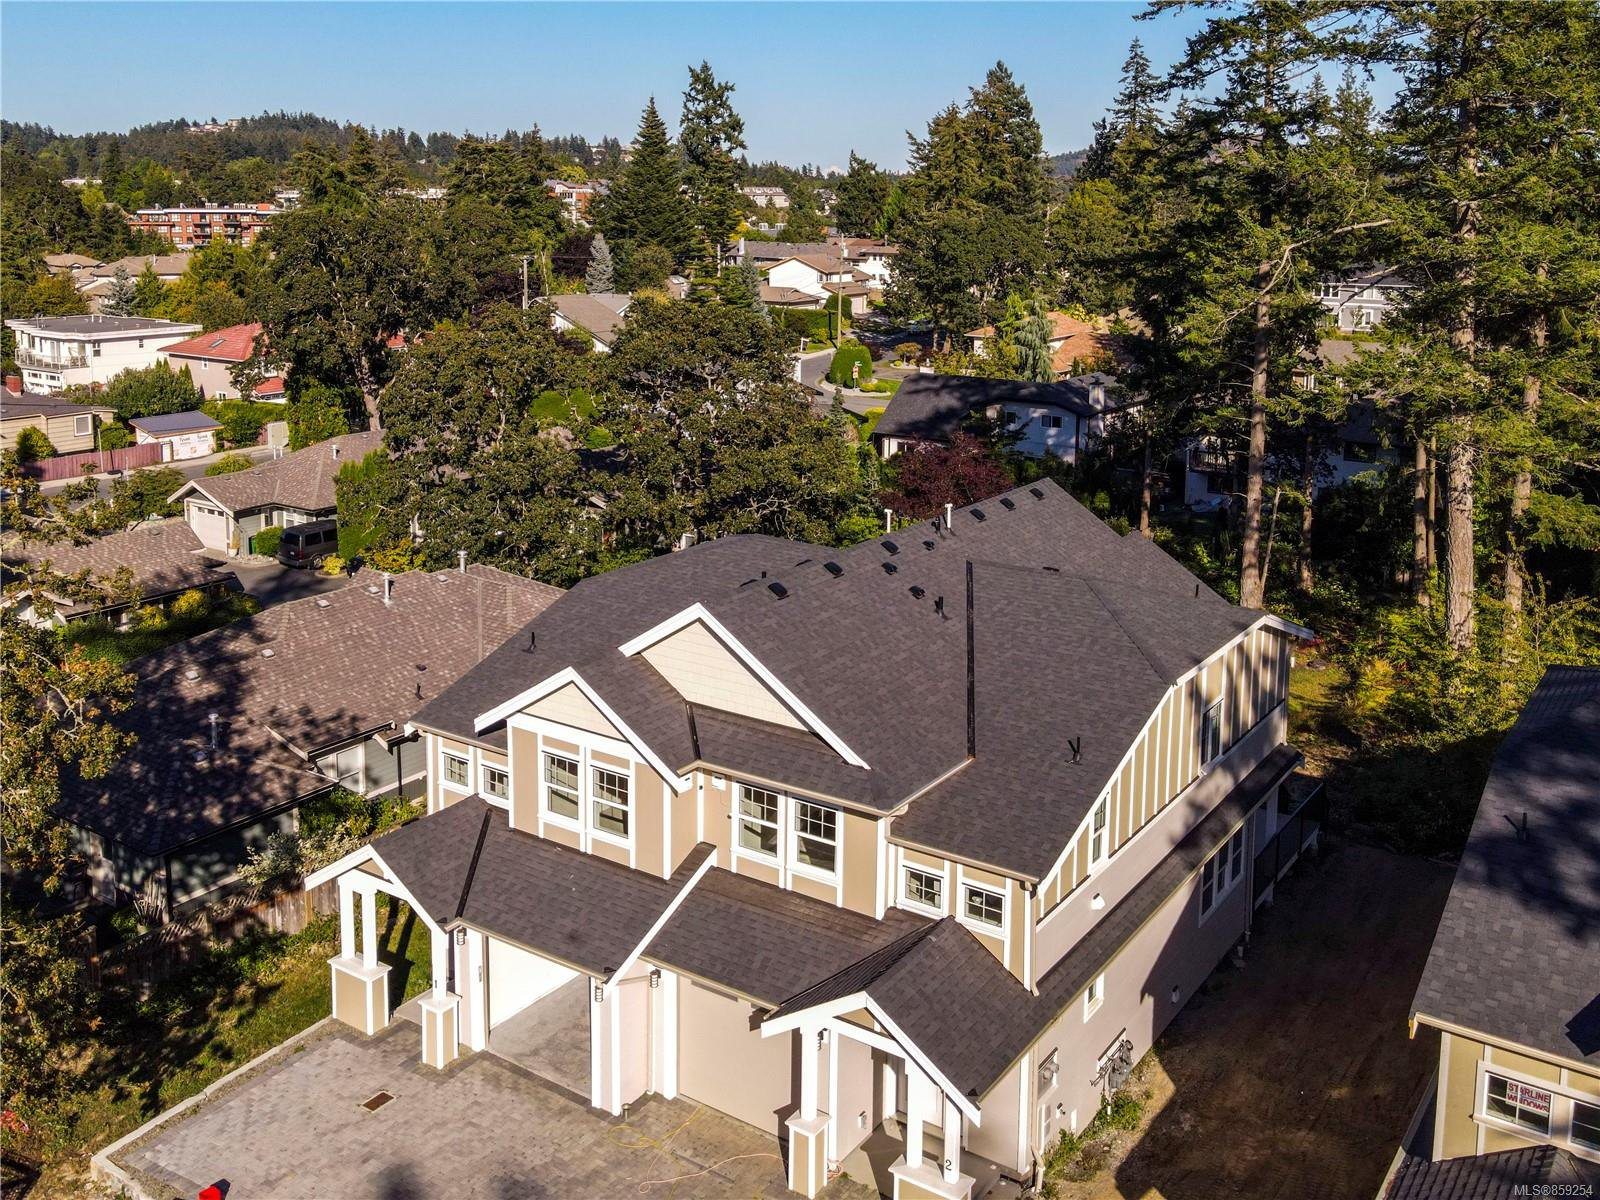 Main Photo: 6 4487 Wilkinson Rd in : SW Royal Oak Row/Townhouse for sale (Saanich West)  : MLS®# 859254